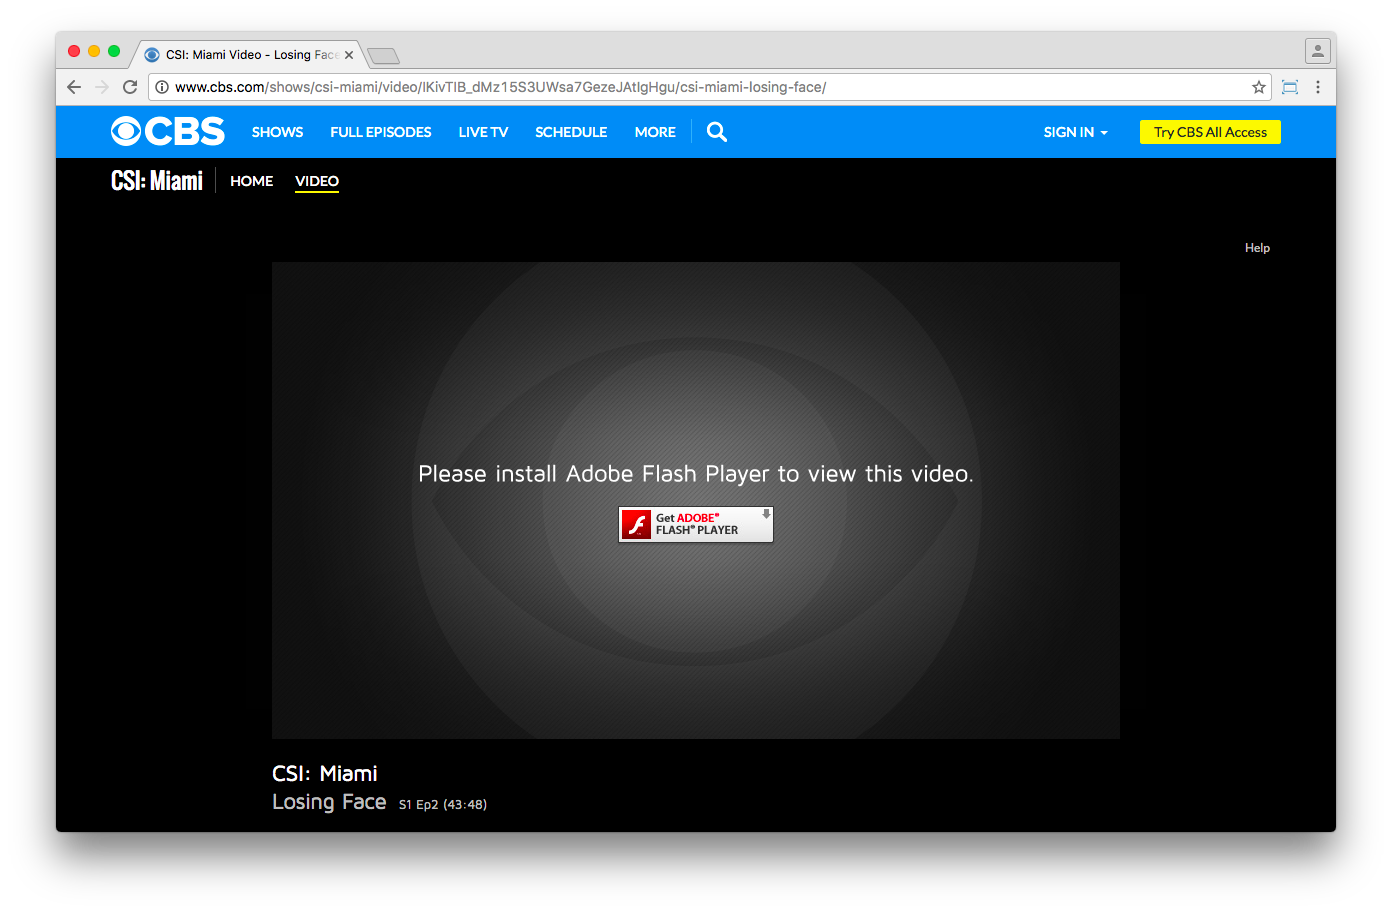 CBS' video library requires Flash Player